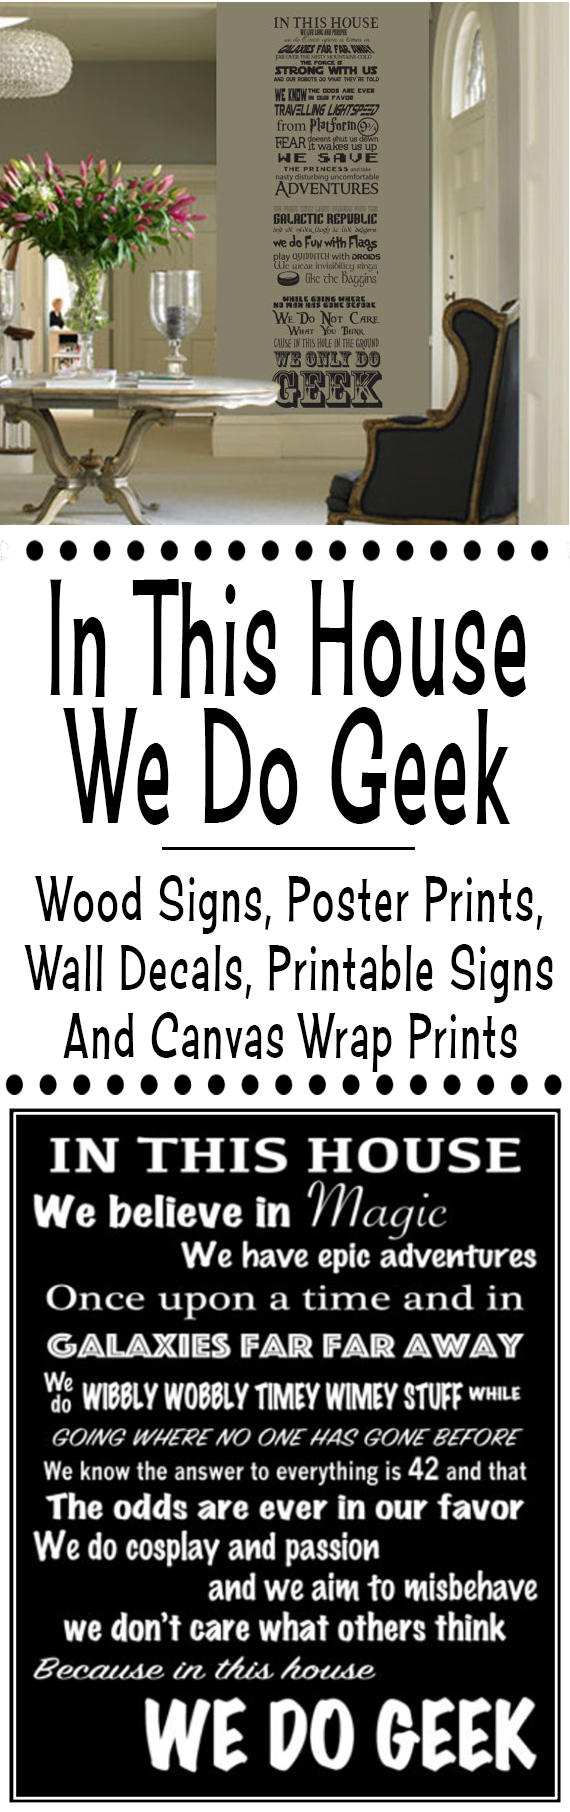 In This House We Do Geek Wood Signs, Photo Prints, Wall Decals, Printable Signs And Canvas Wrap Prints